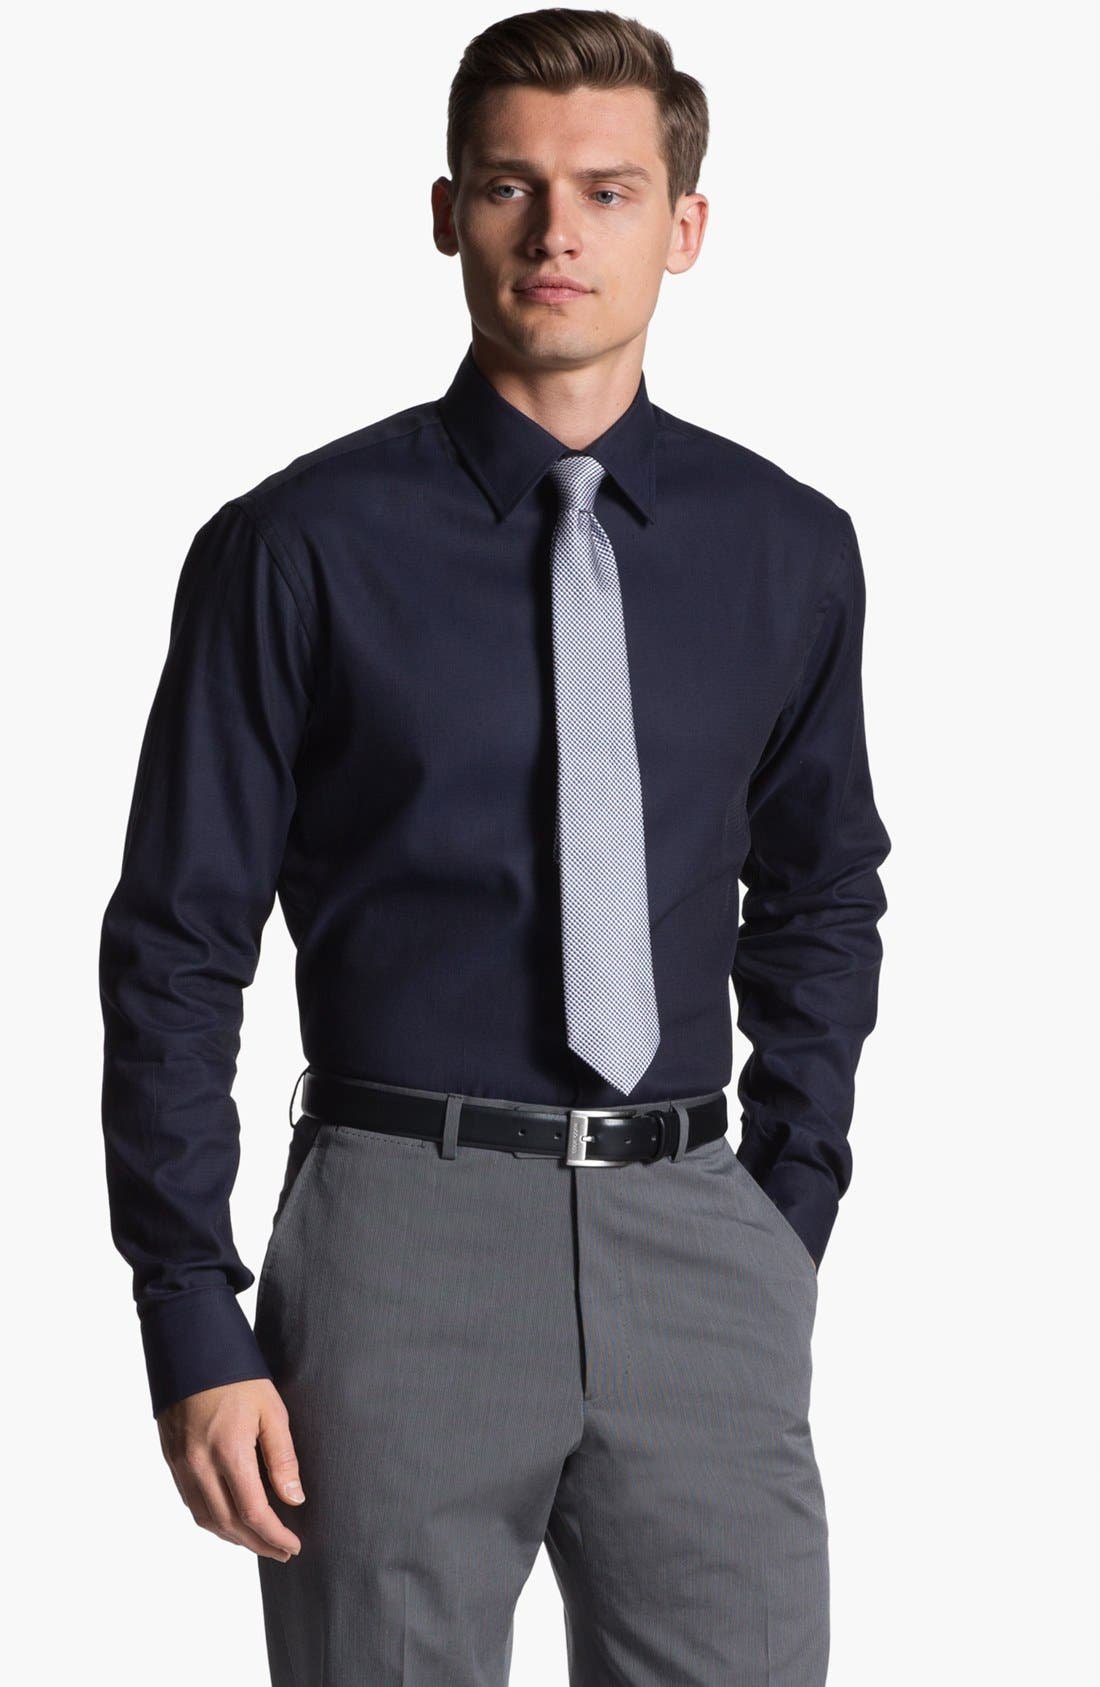 Alternate Image 1 Selected - Armani Collezioni Trim Fit Cotton Dress Shirt